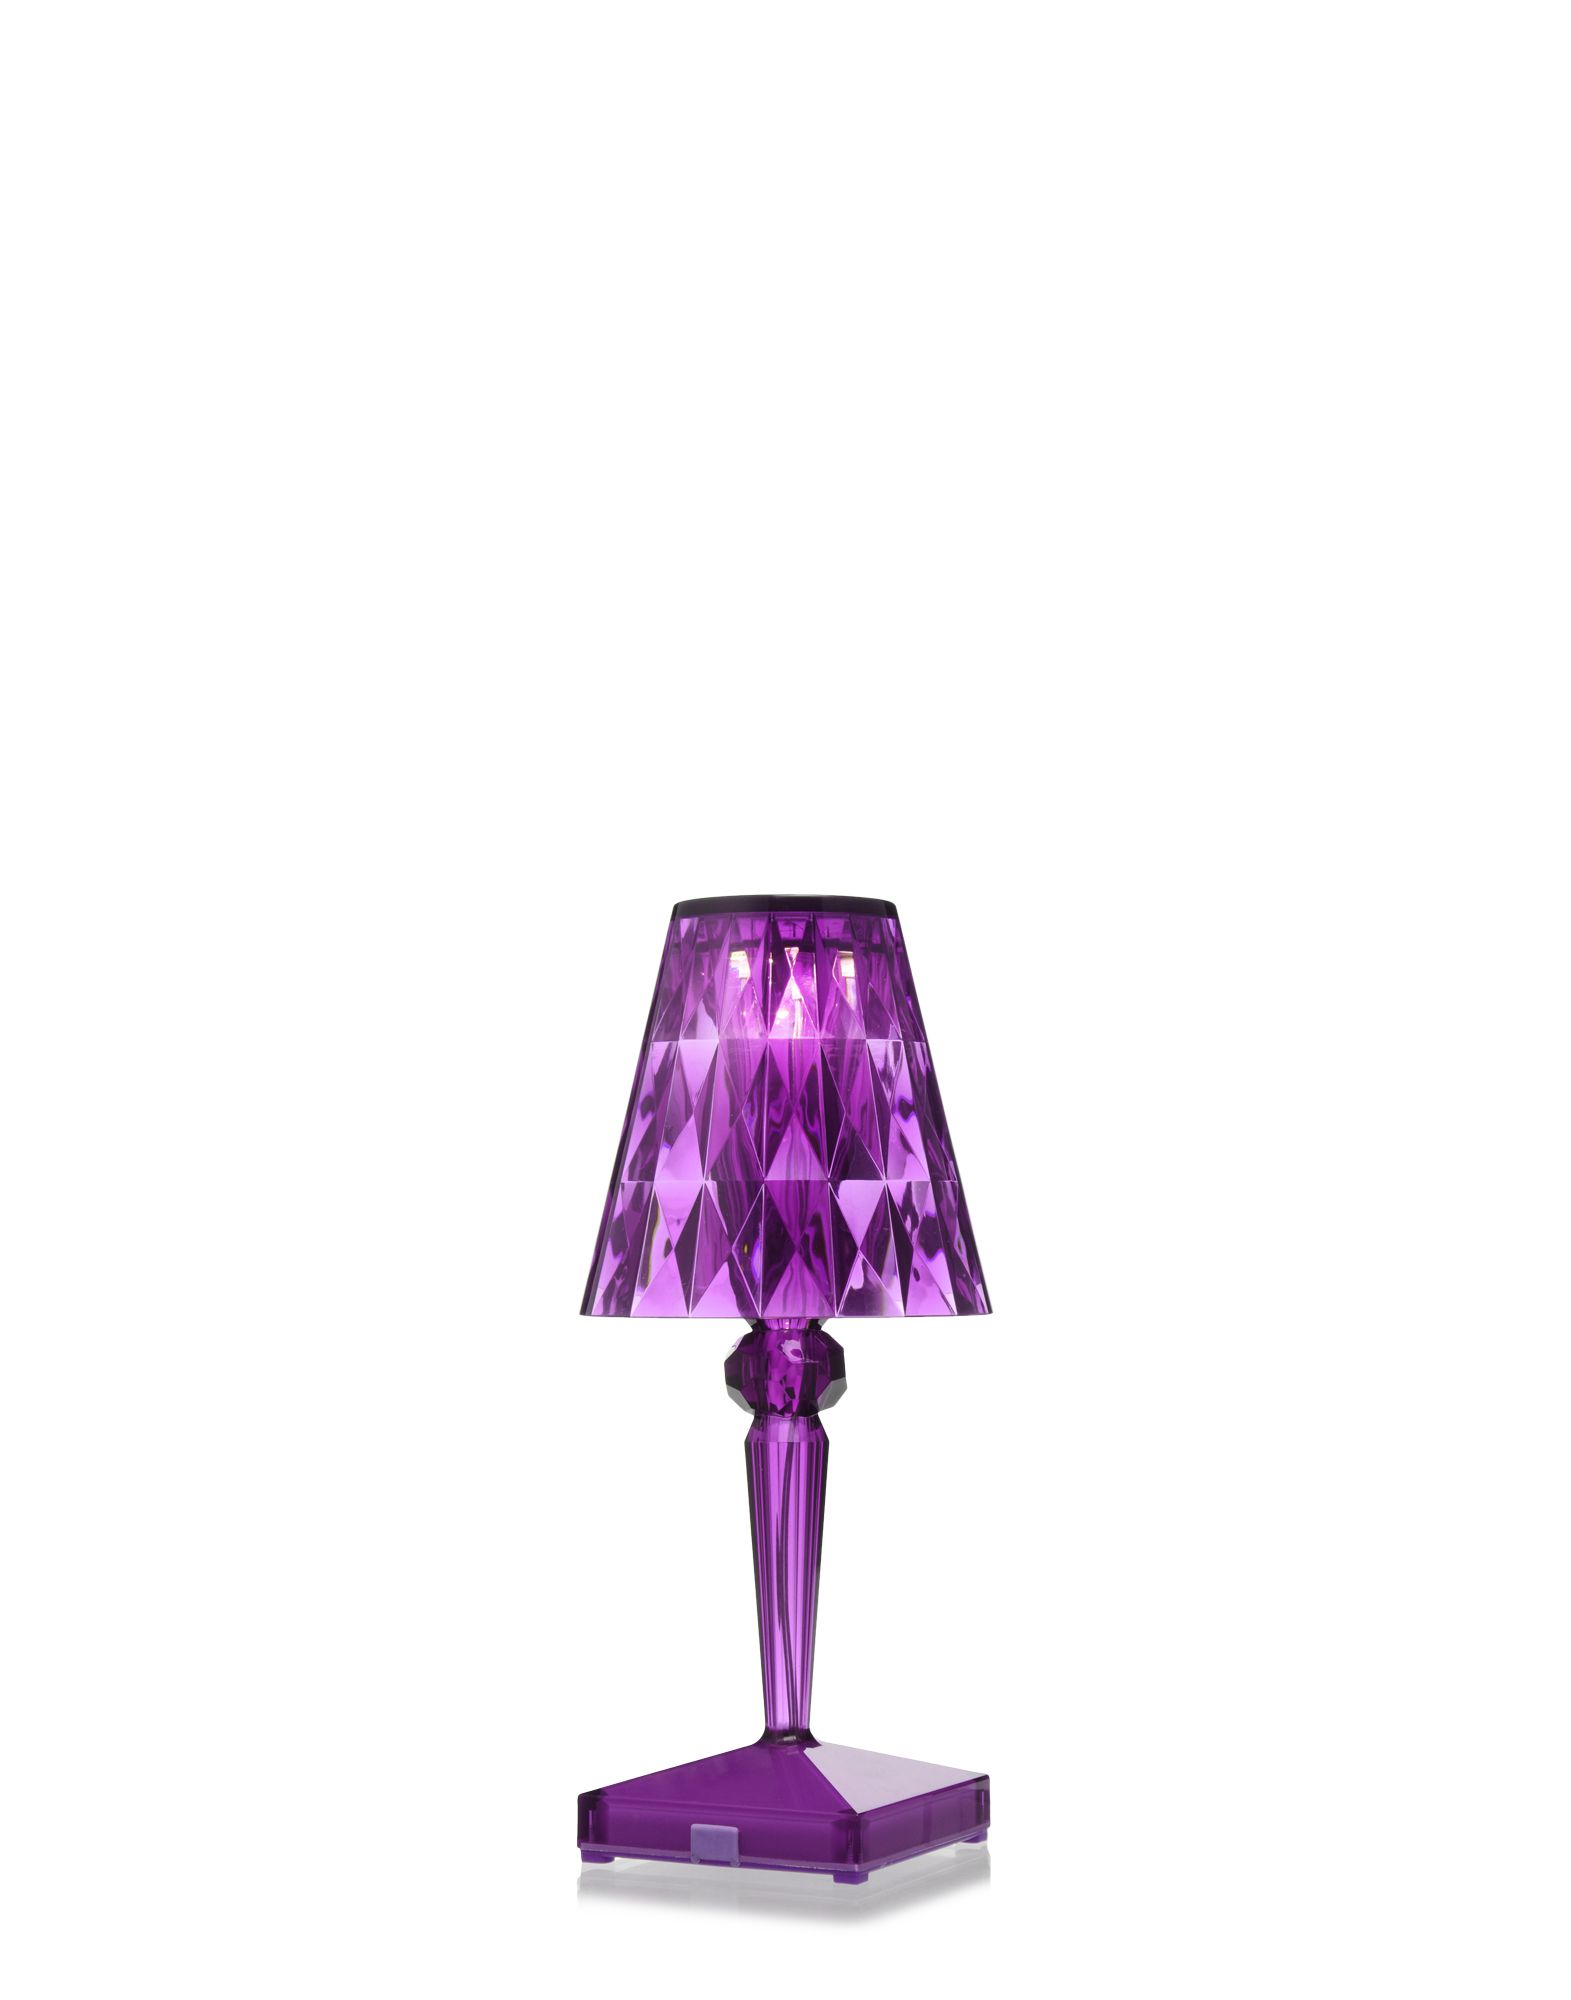 Kartell table lamp 9140 Battery plum